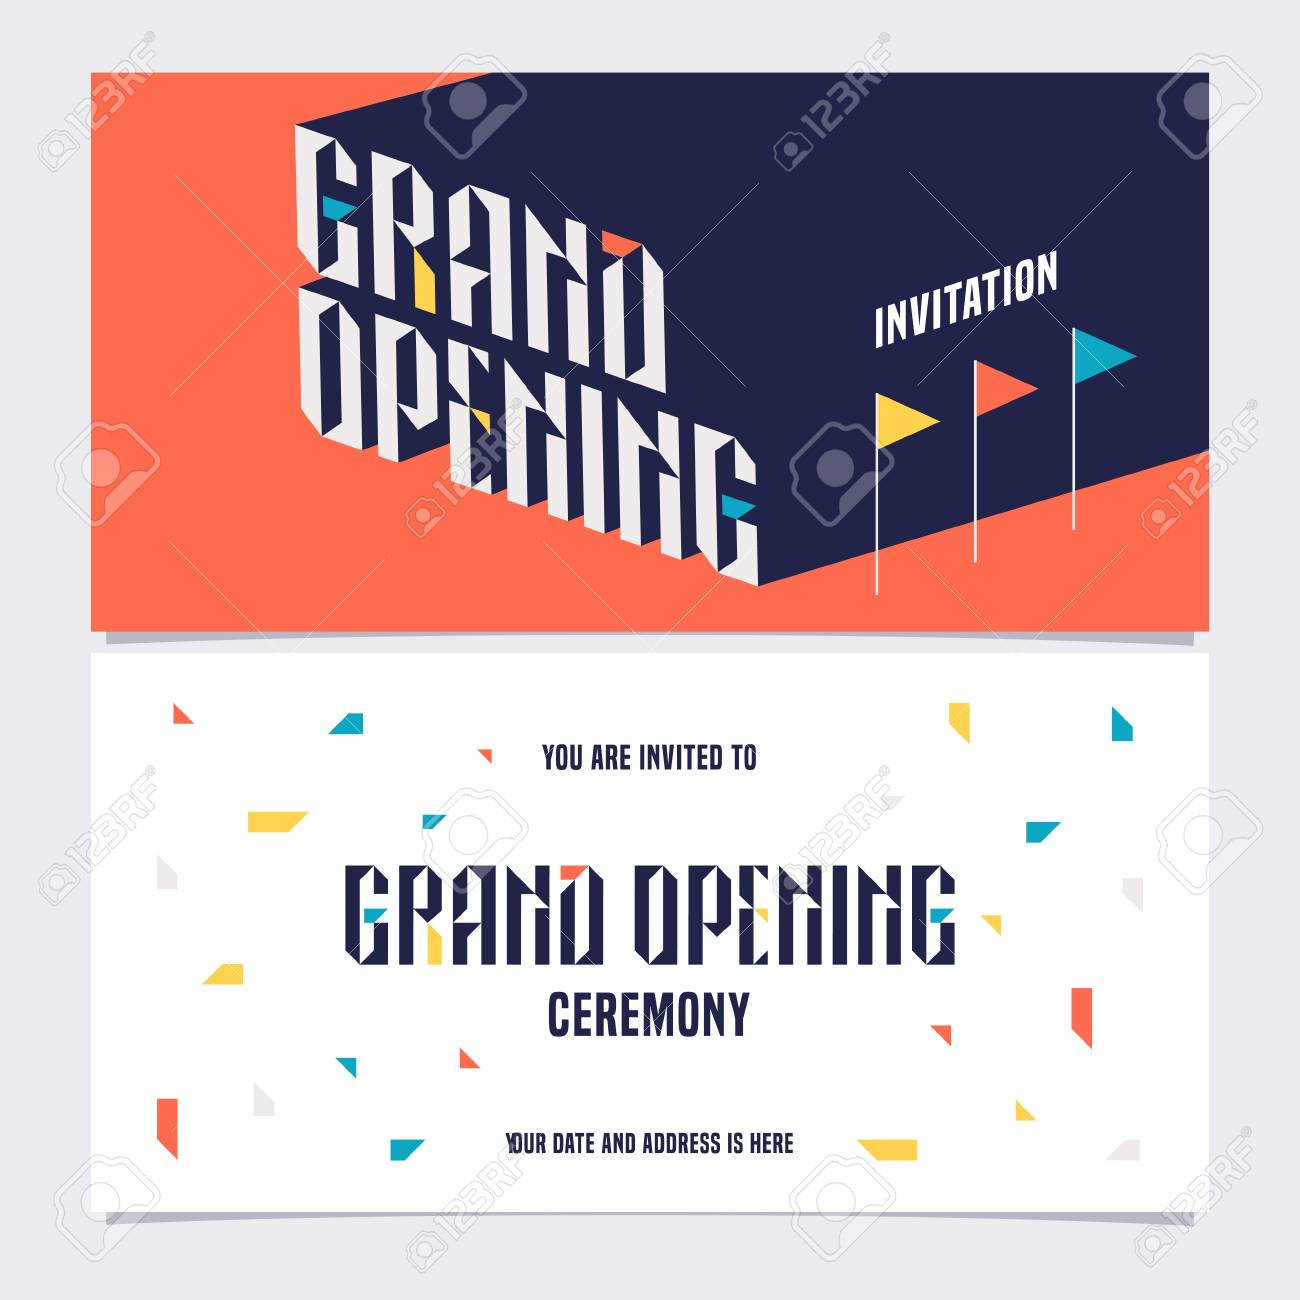 Template Design Element For Invitation Card To Grand Opening